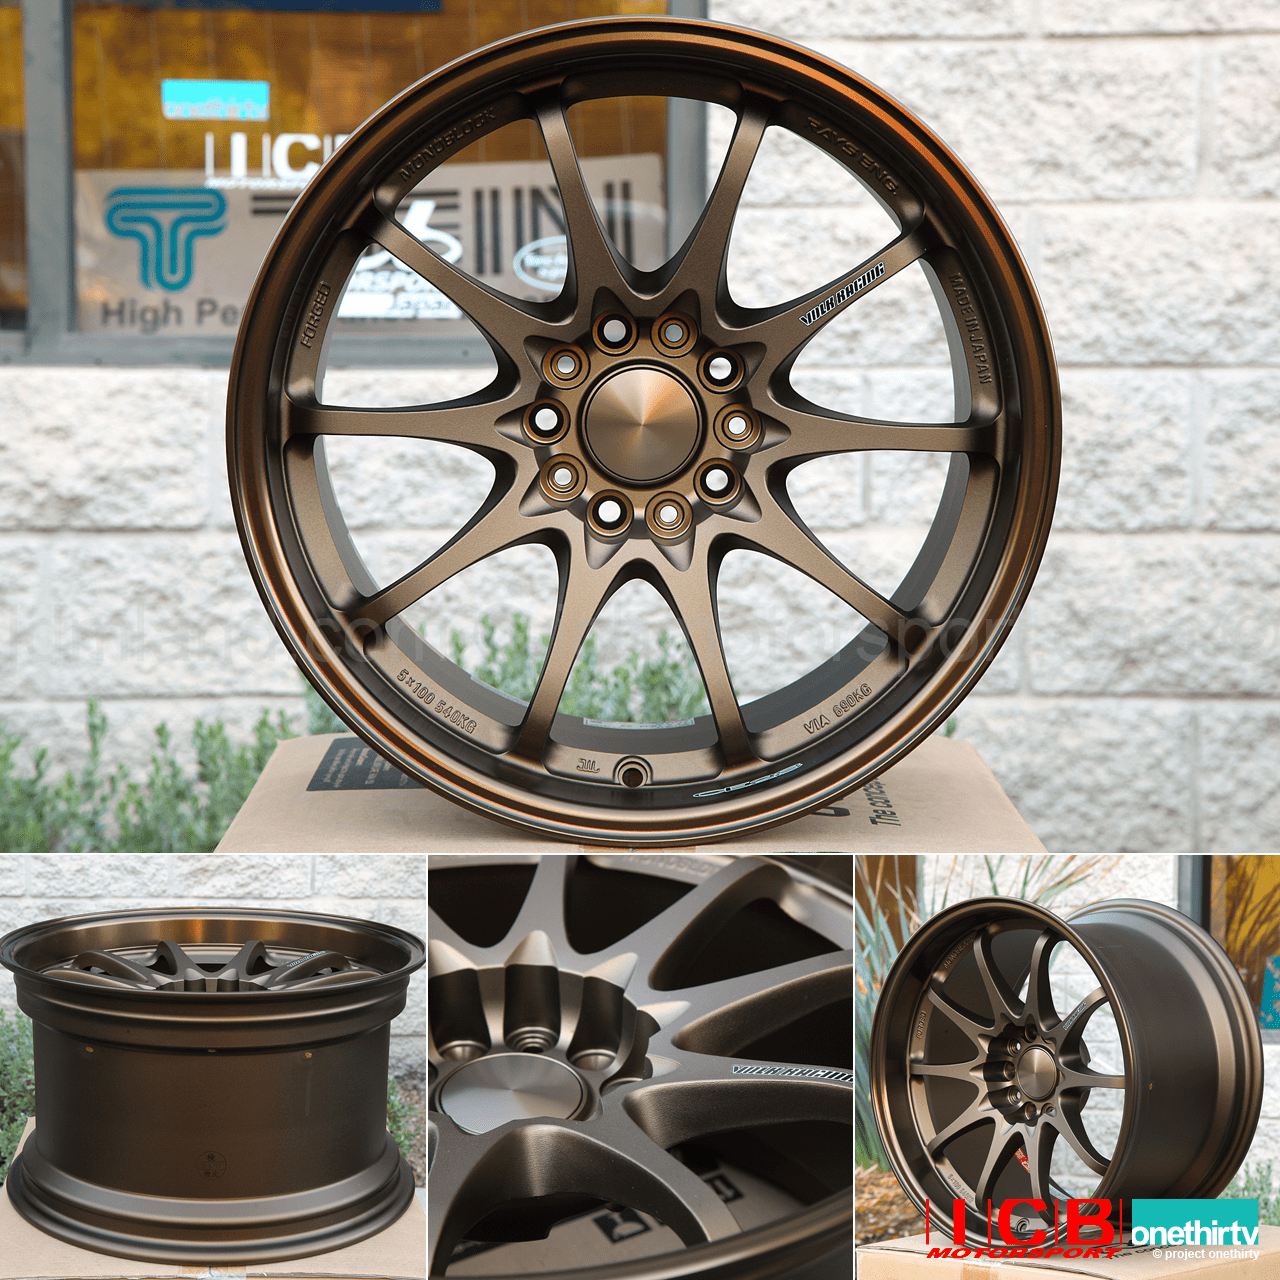 Rays Volk Racing CE28N BRONZE Wheels Set 5X114.3 17X10 +22 Offset Concave Face